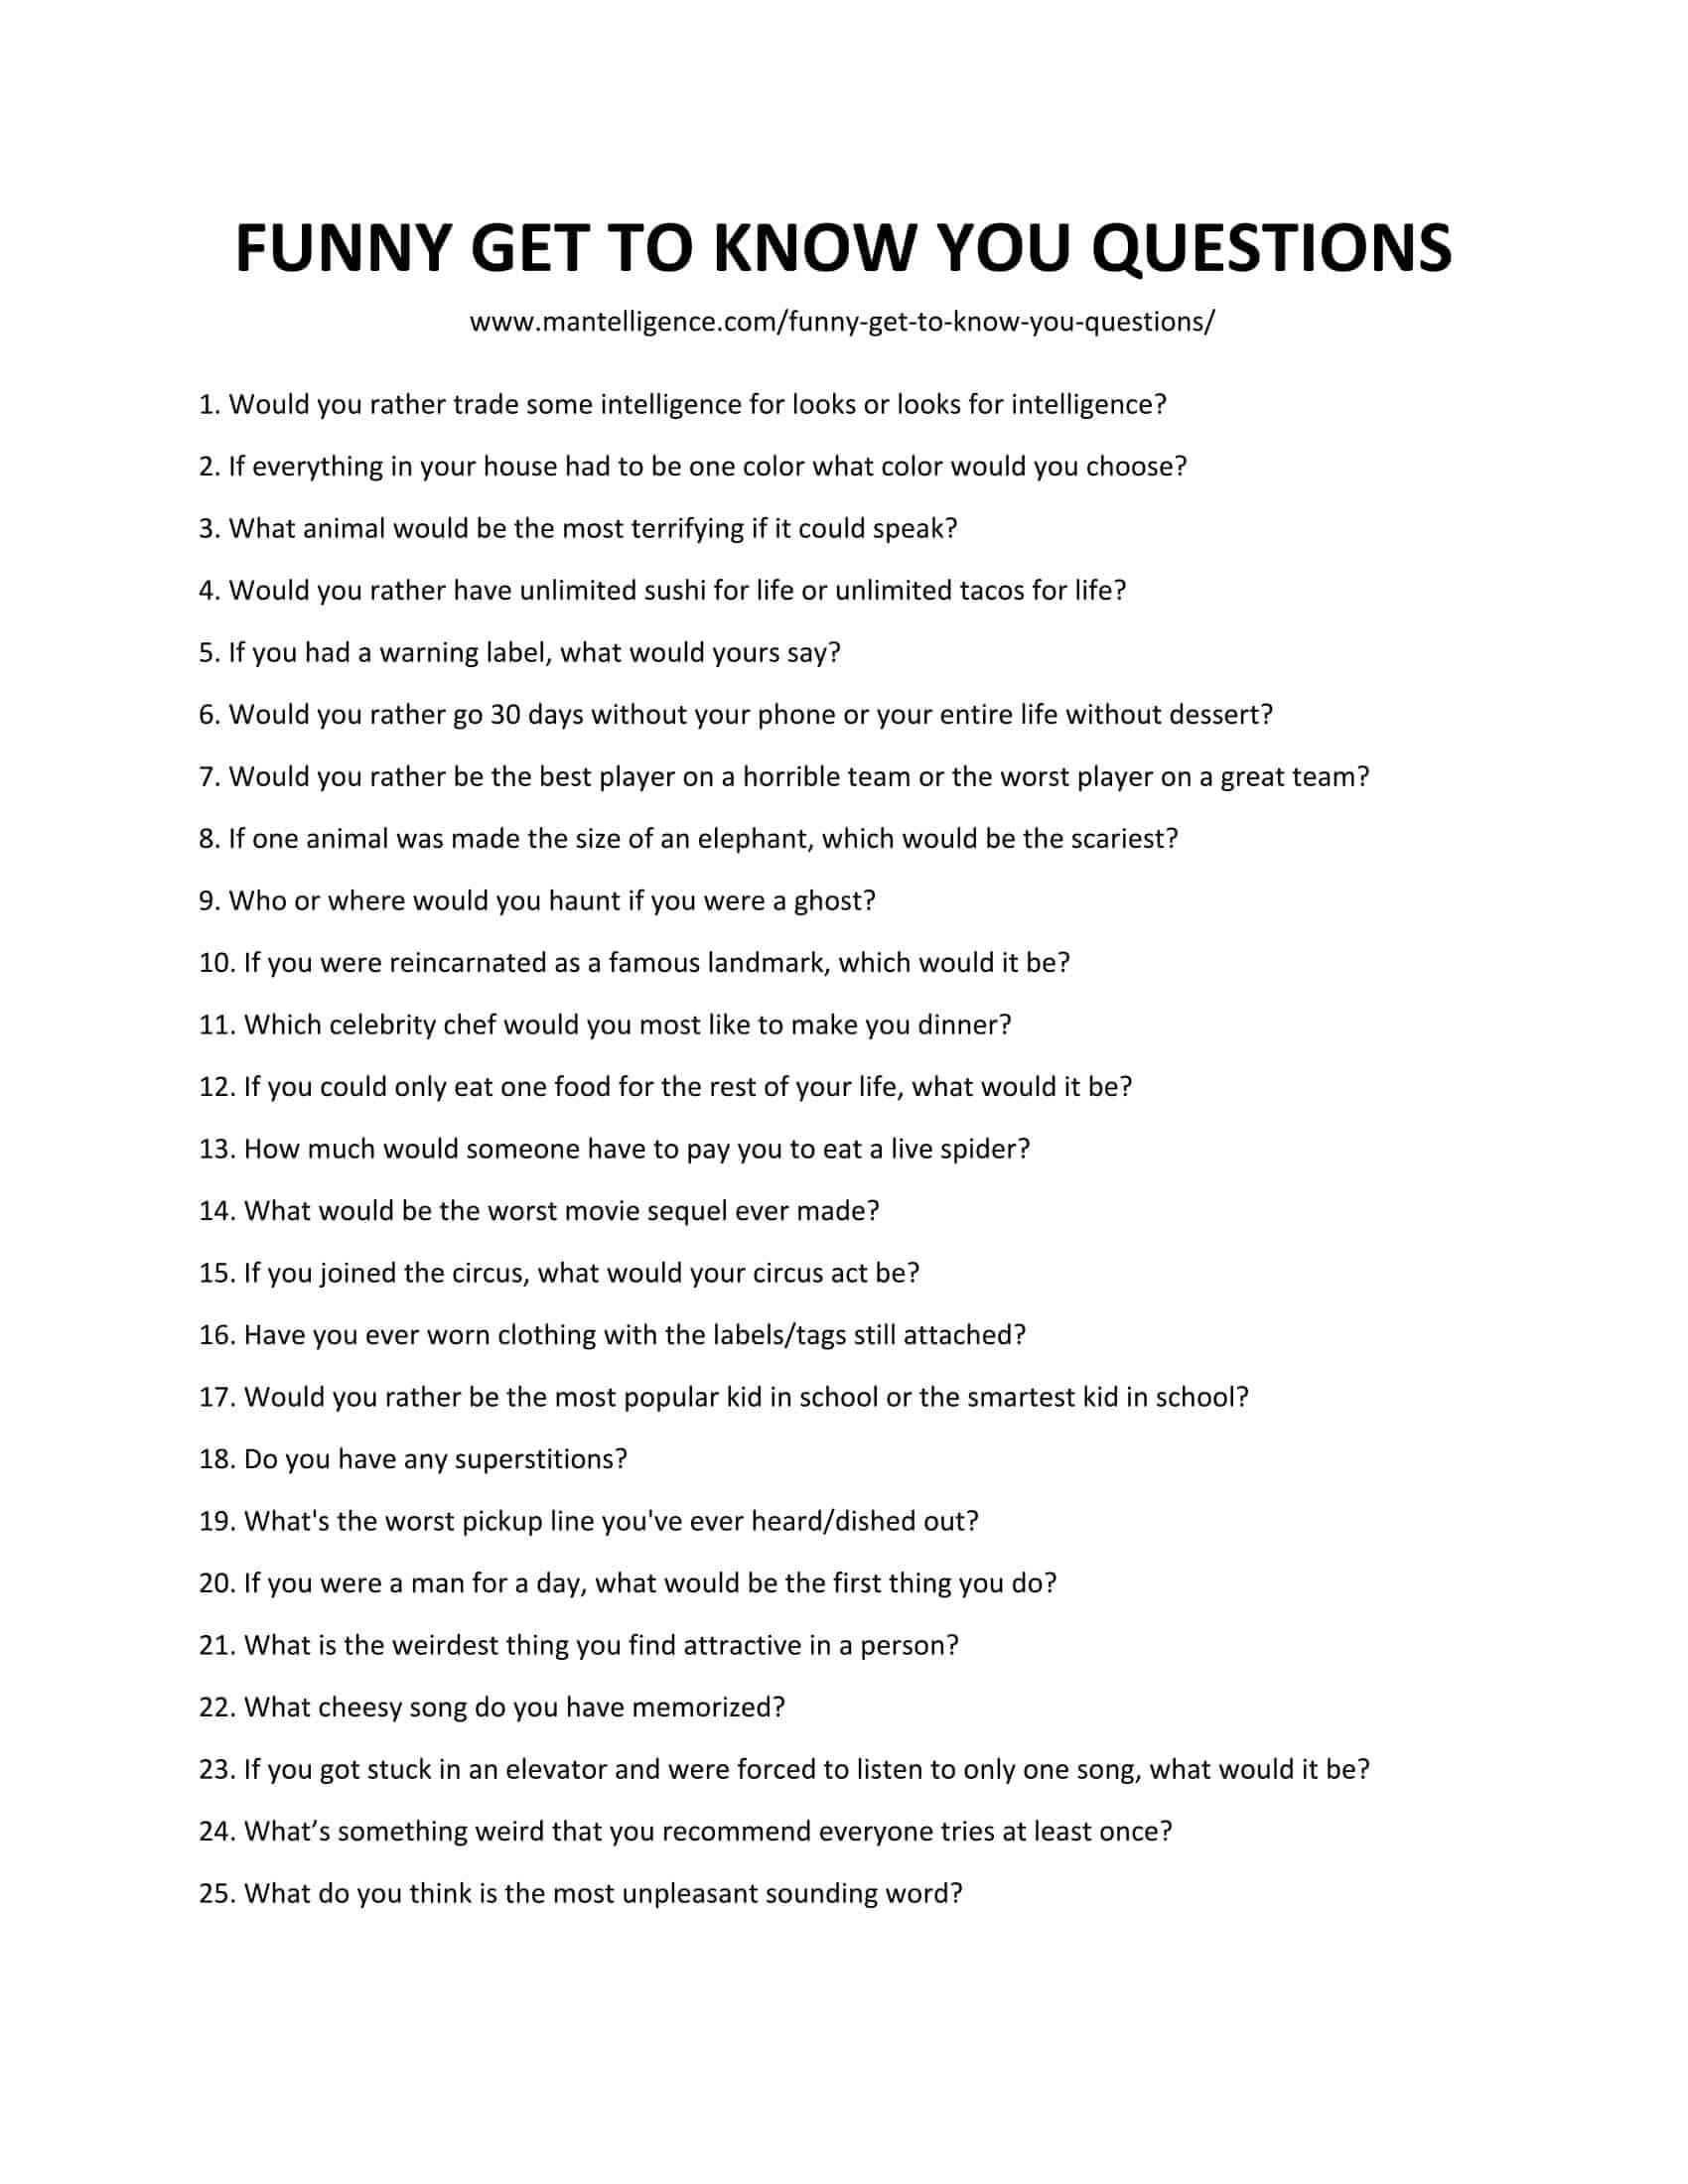 Funny Questions to Ask - Get ready for a hilarious conversation